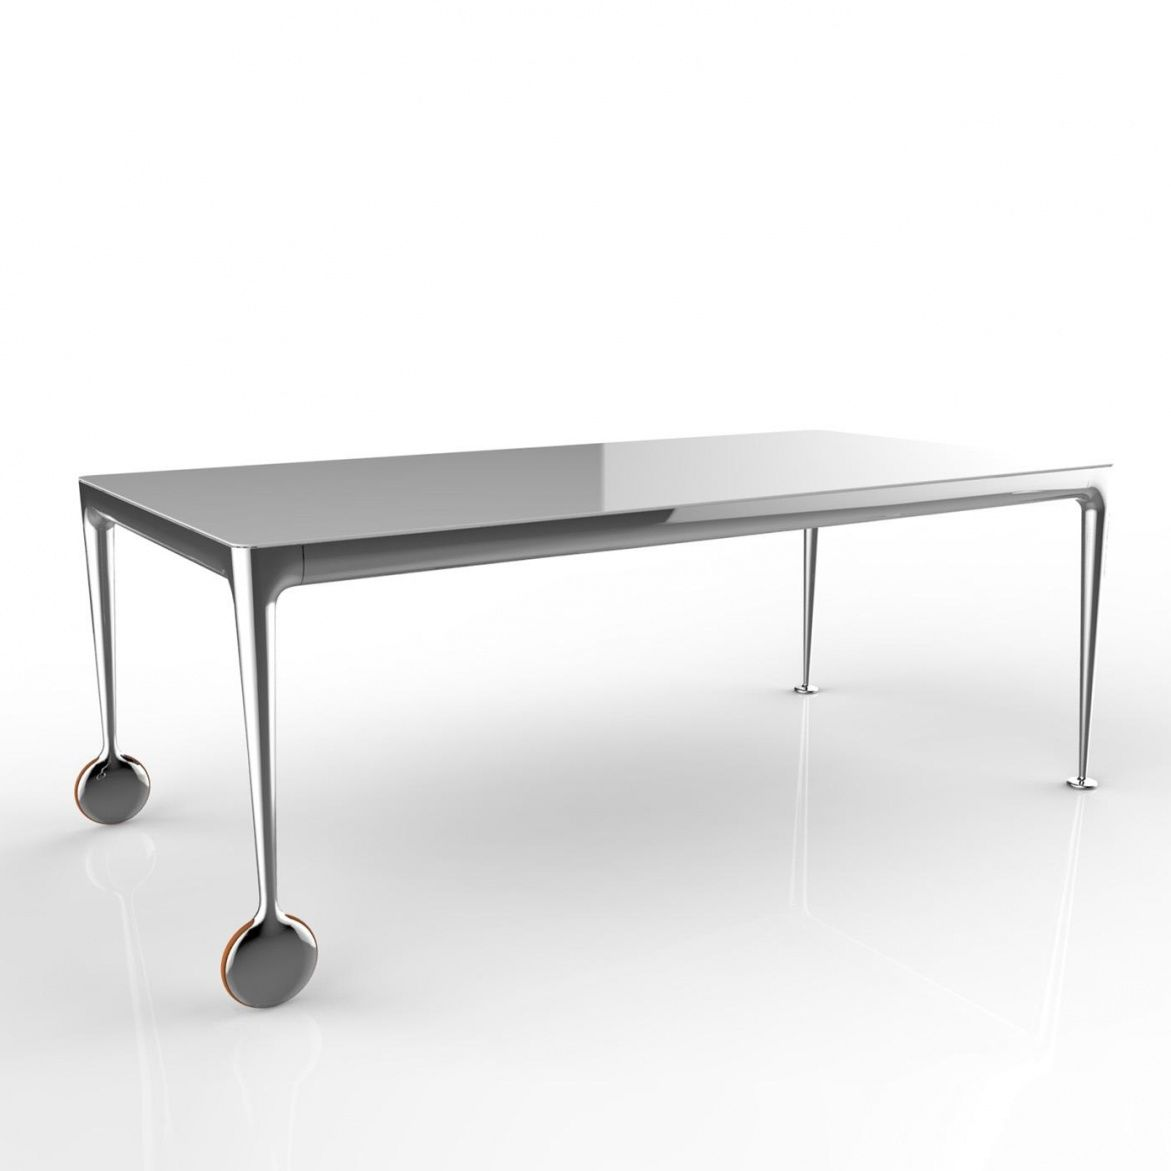 Big Dining Table Part - 39: Magis - Big Will Dining Table/Office Table - White/glossy/200x100cm/